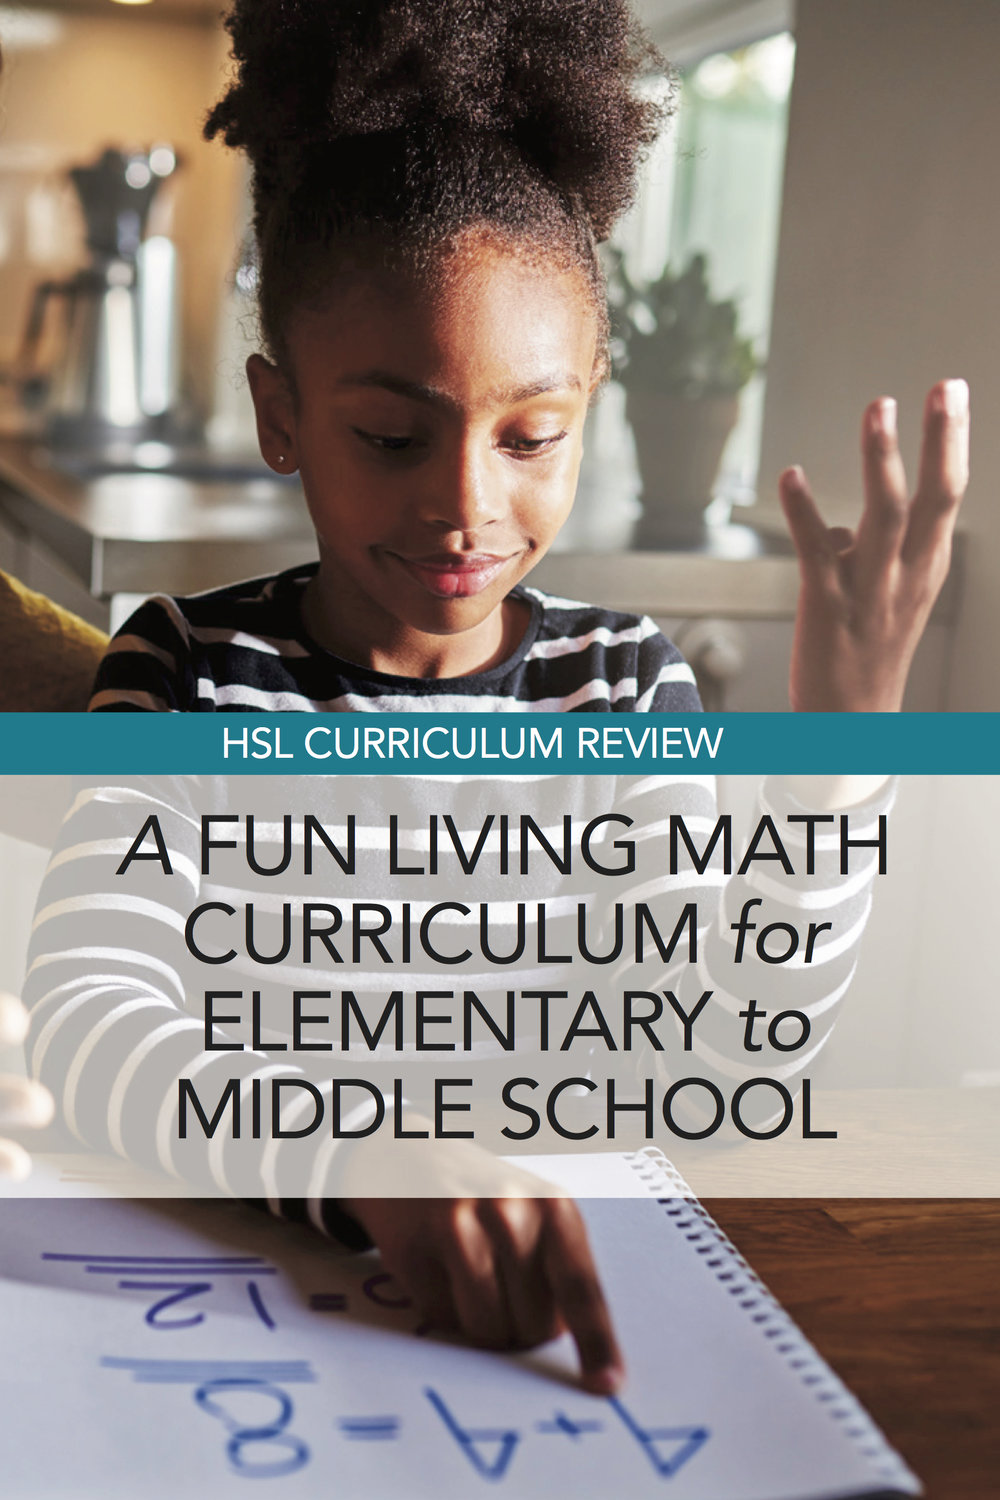 A Fun Living Math Curriculum for Elementary to Middle School: Your Business Math